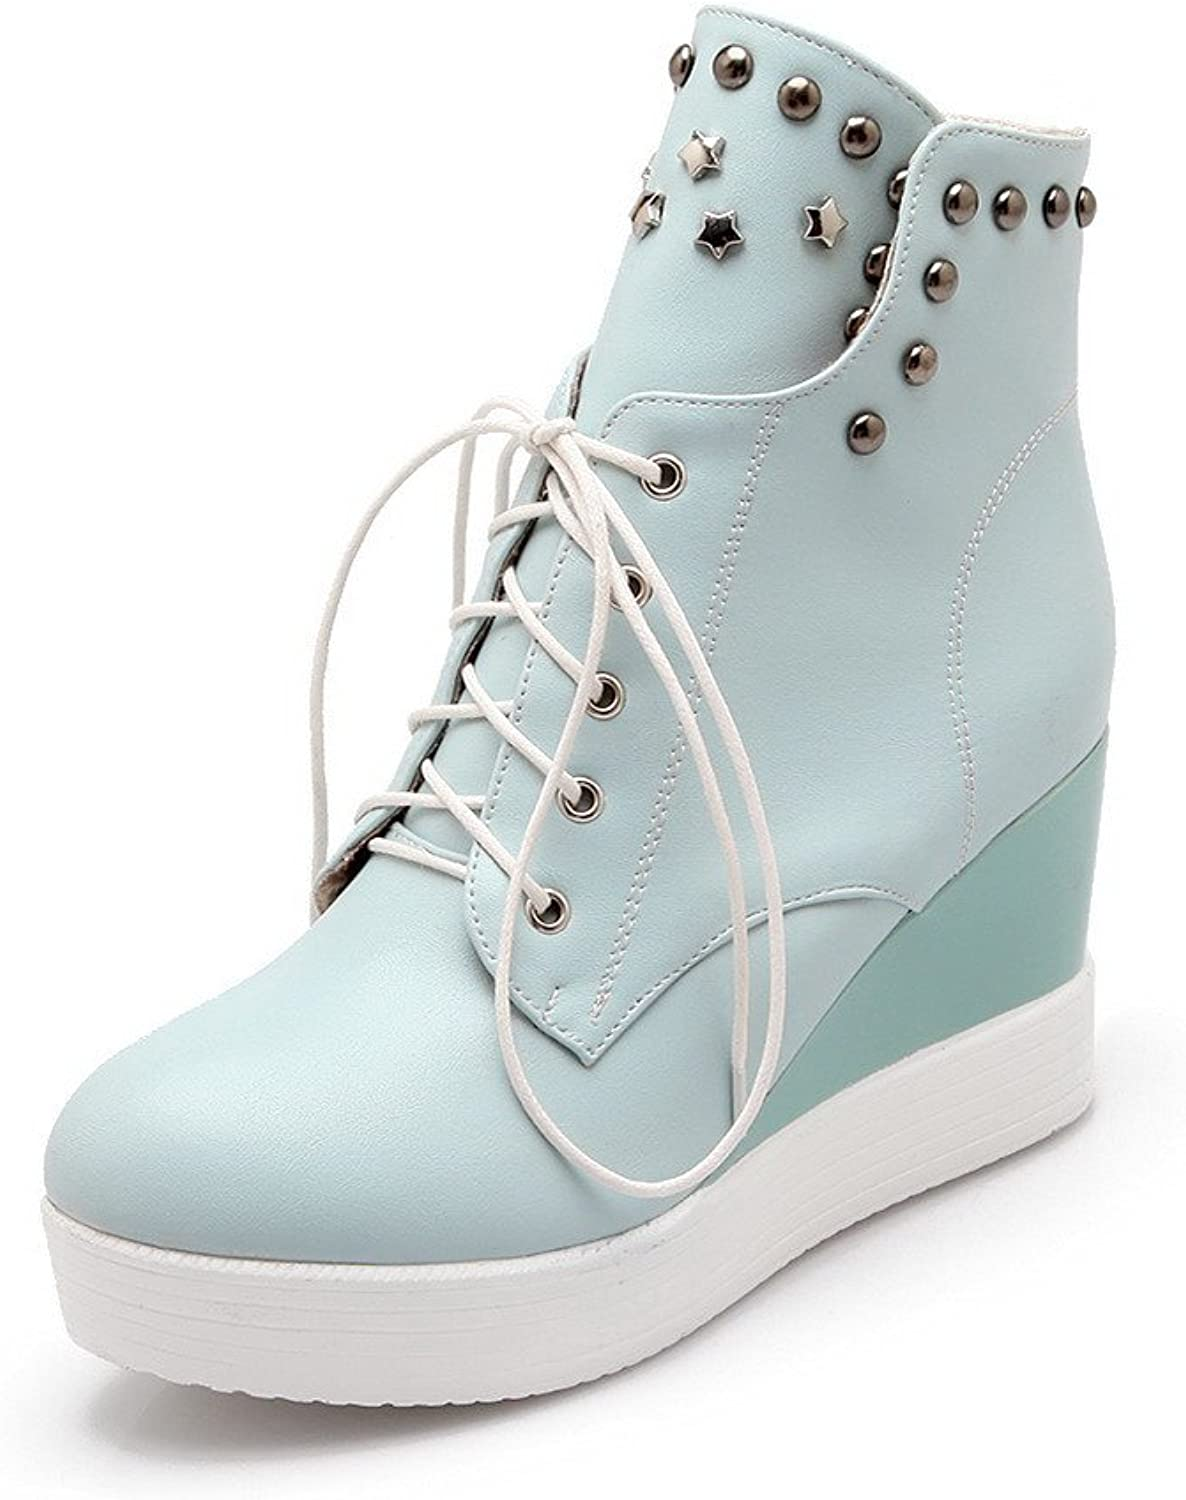 AllhqFashion Women's High-Heels Closed Toe Low-top Boots